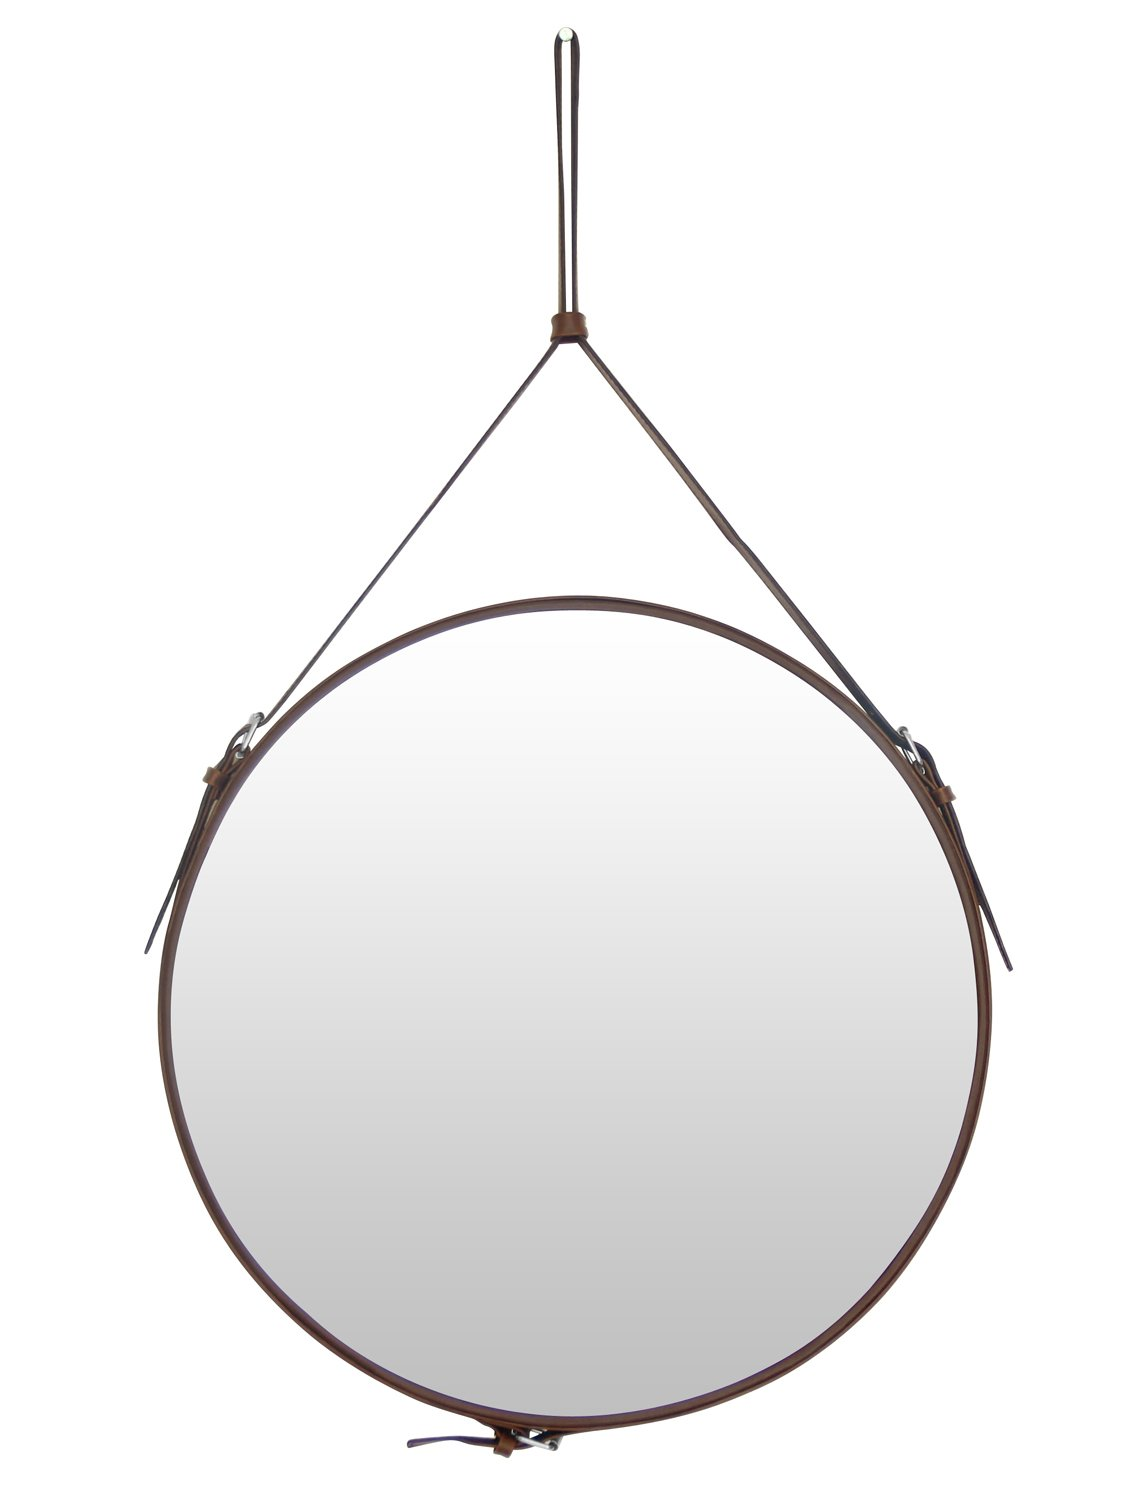 Ms.Box PU Leather Round Wall Mirror Decorative Mirror with Hanging Strap Silver Hardware Hanger/Hooker, Diameter 15.8 inch, Black Jincheng